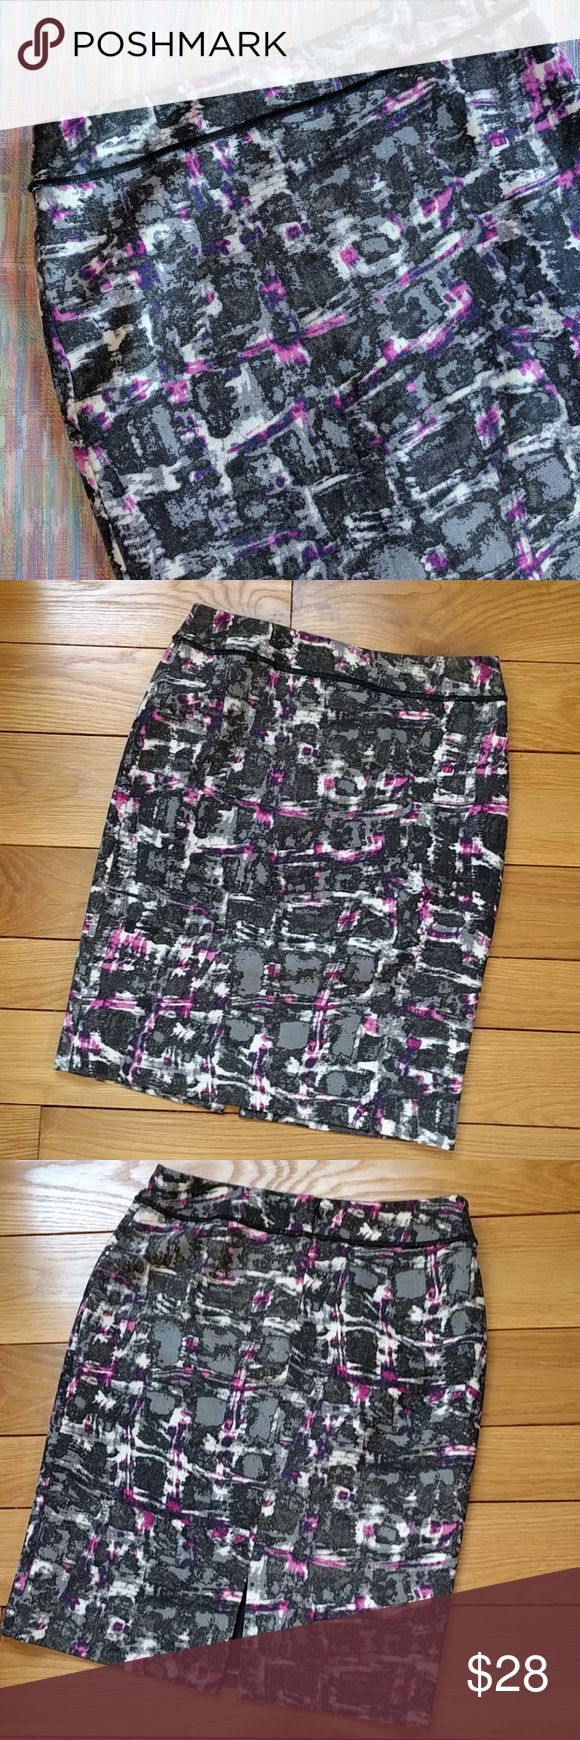 """Worth New York wool abstract print pencil skirt Beautiful wool skirt by the brand Worth.  Great condition, no stains or tears.  Only worn once, almost like new.  Lovely colors in this abstract print, grays and purple.  Zipper and slit in the back, fully lined.  Measures 15"""" flat across the waist, 22"""" length. Worth Skirts Pencil"""